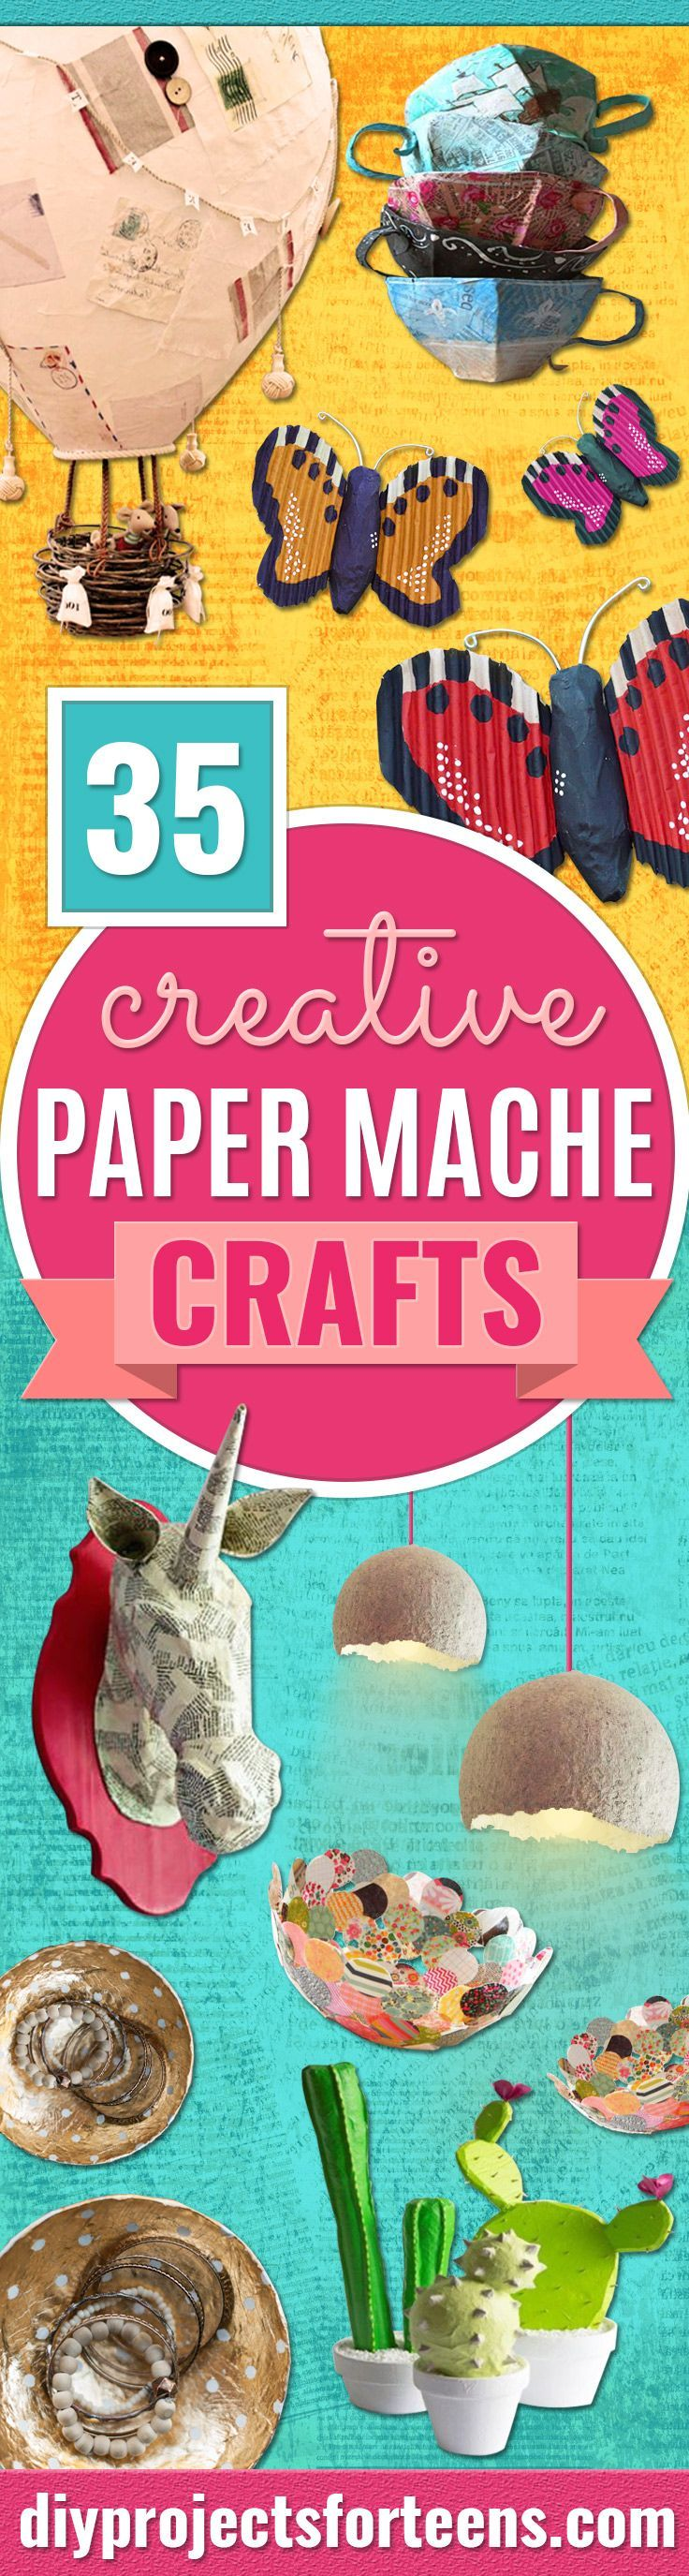 Creative Paper Mache Crafts  Easy Diy Ideas For Making